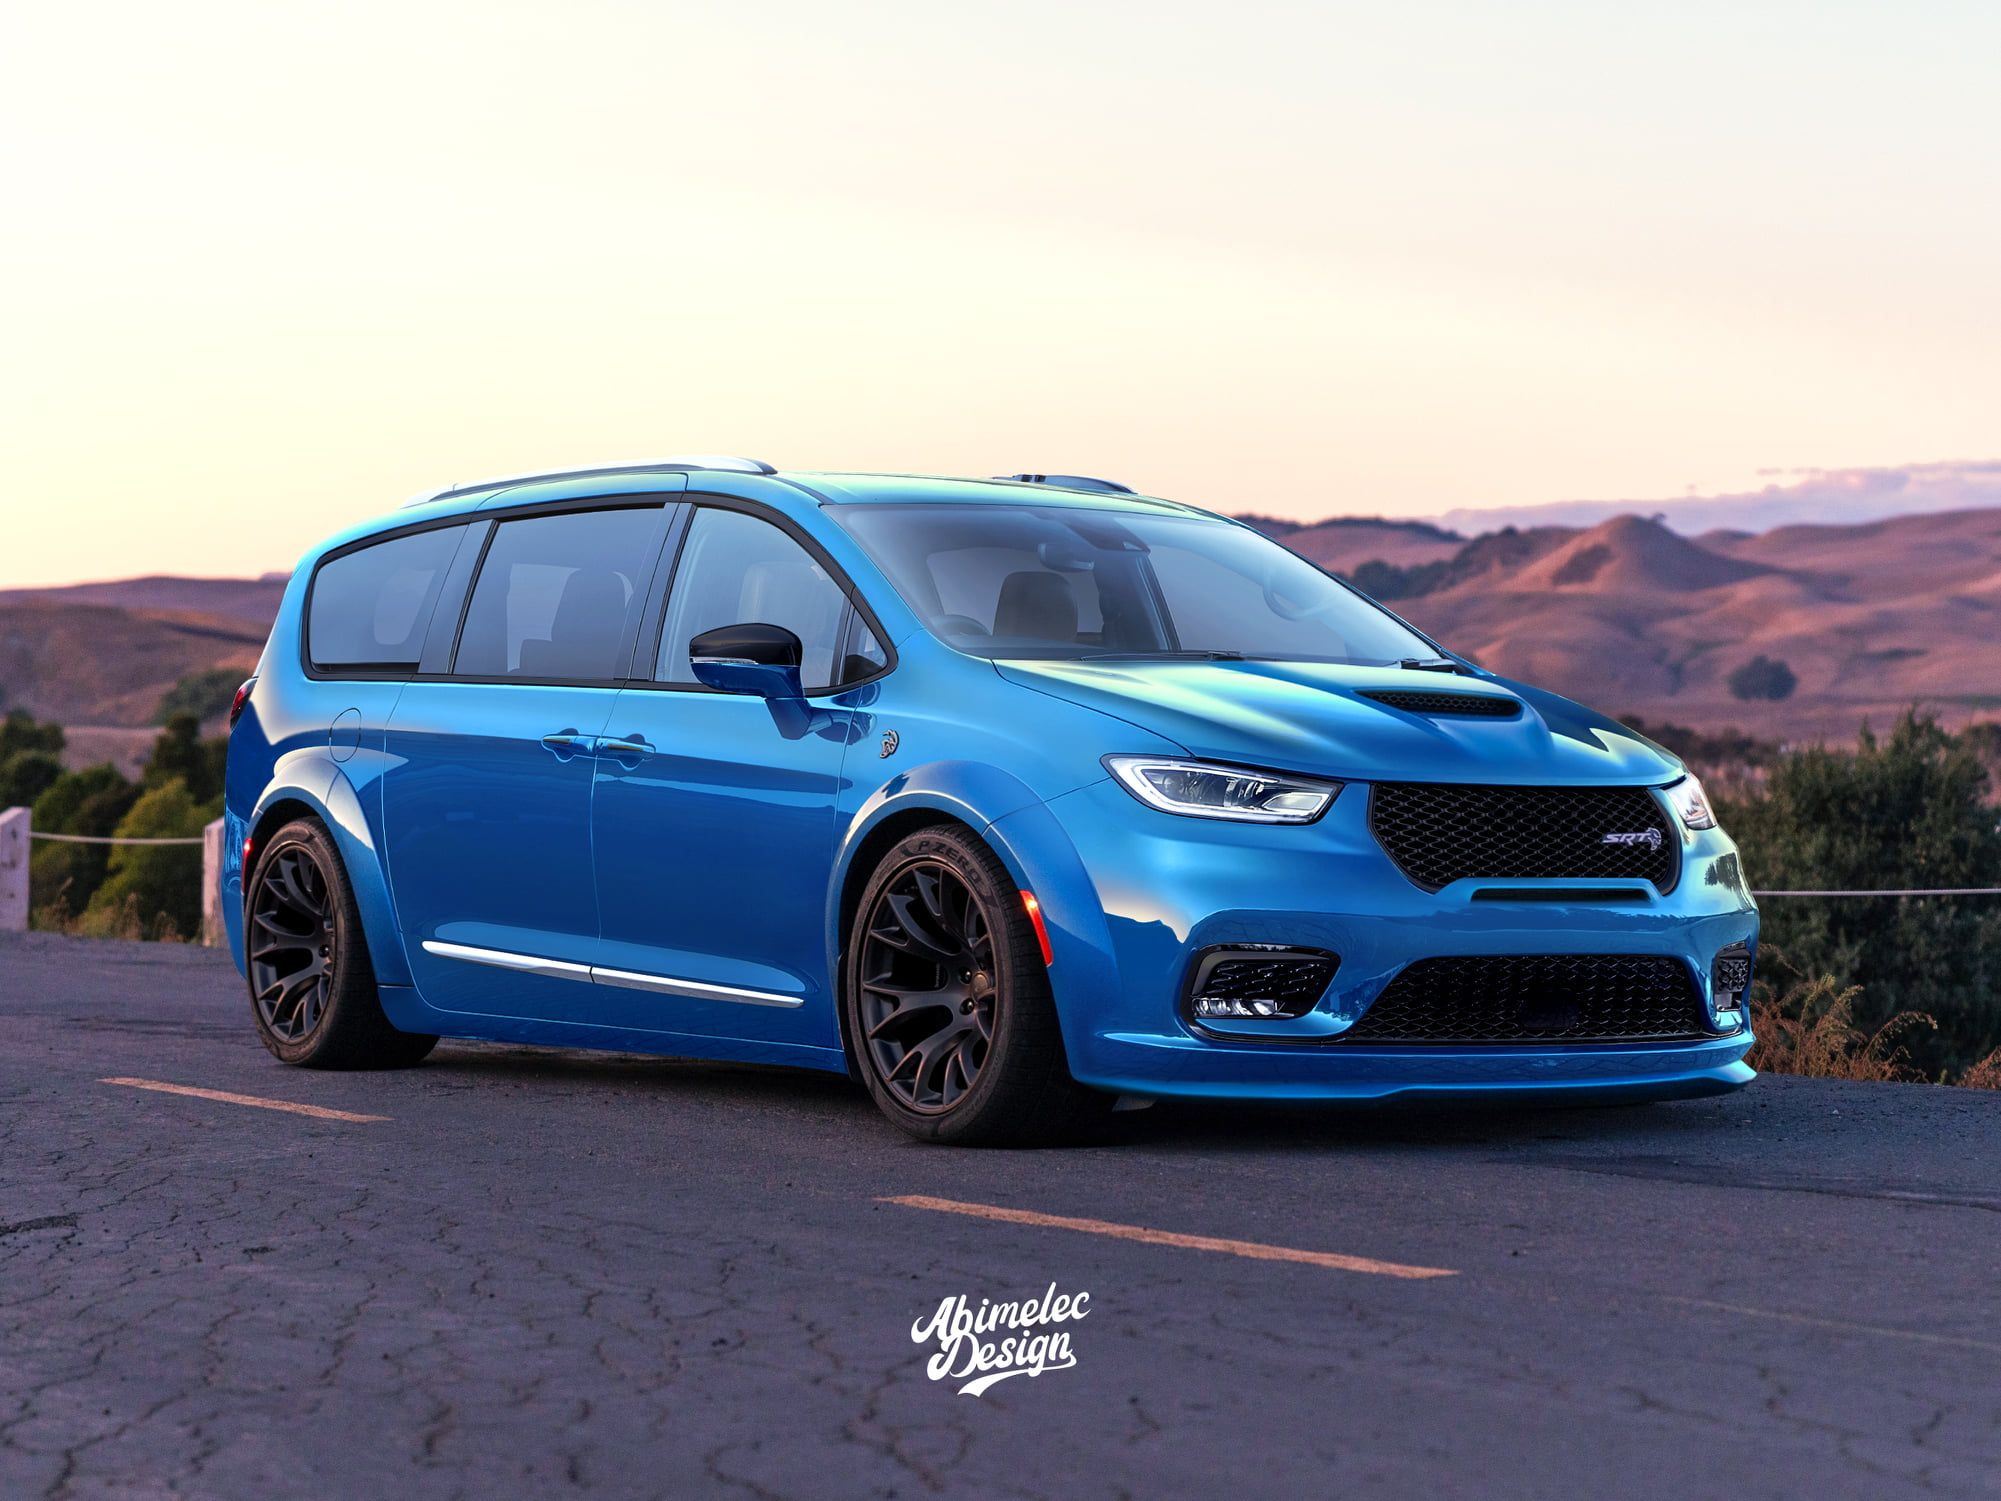 Chrysler Pacifica tuning